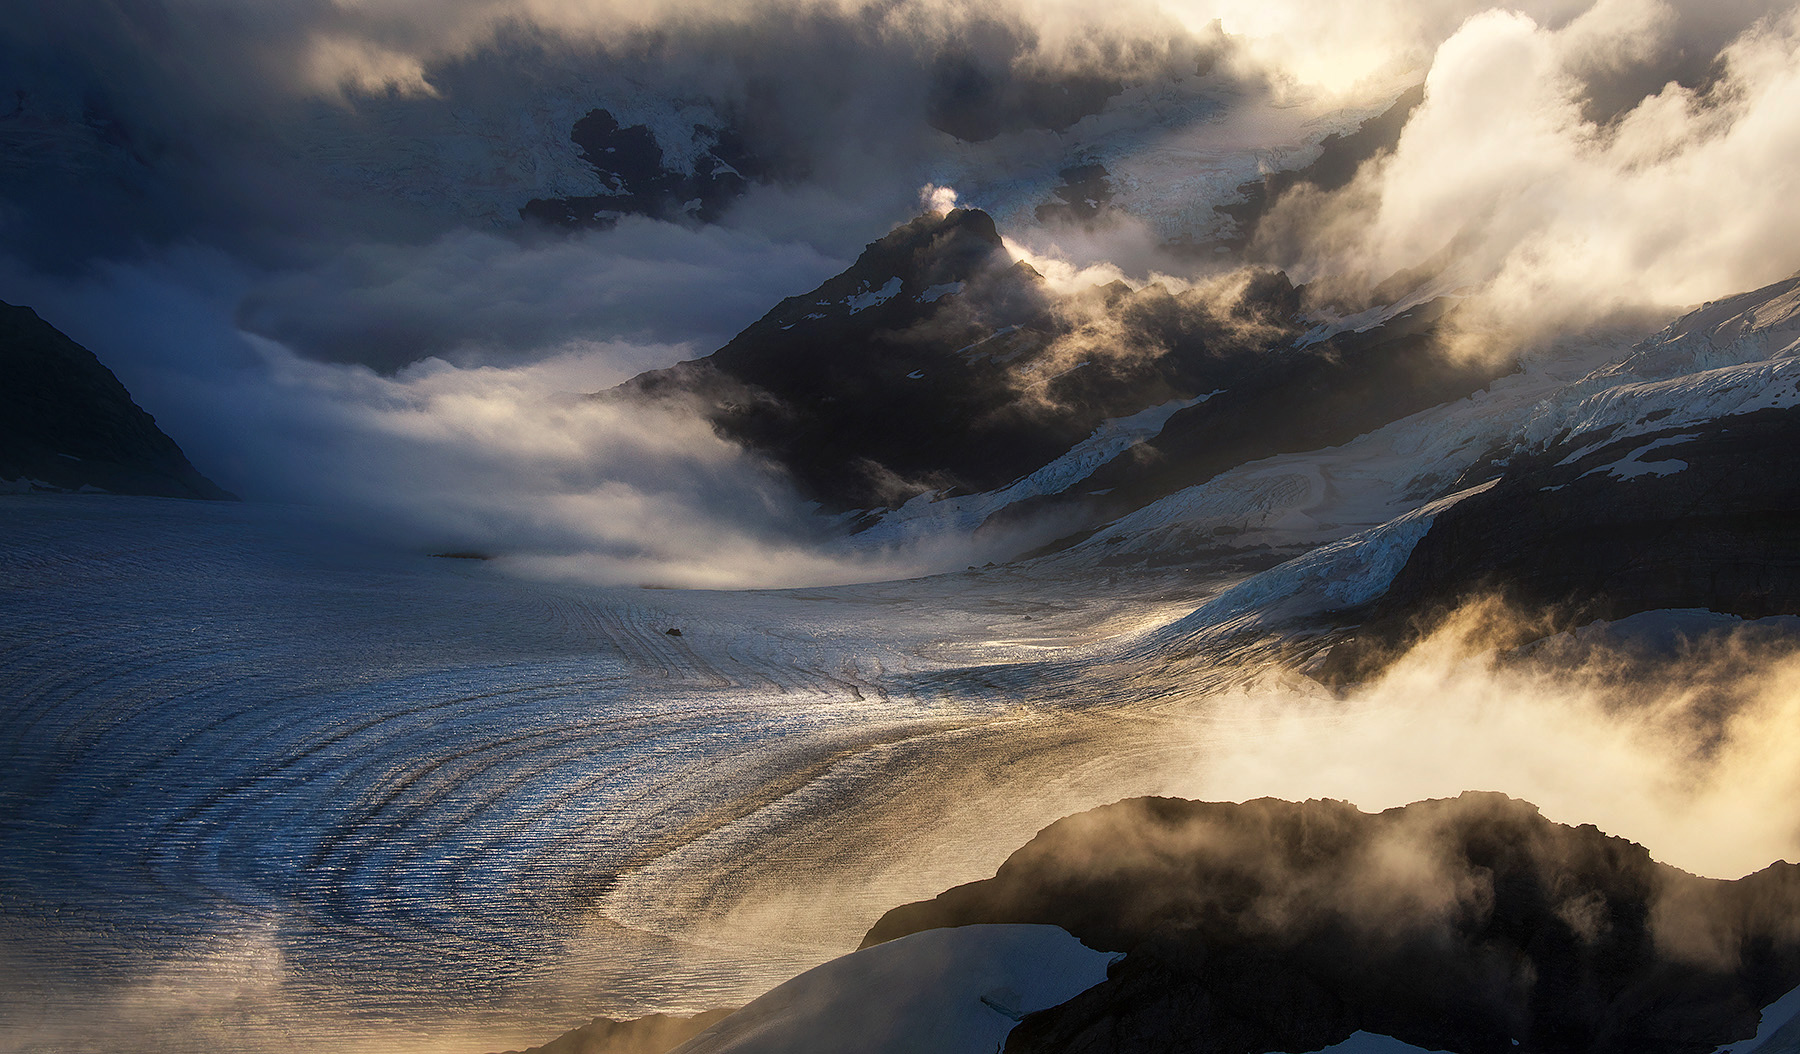 Layers of glacial terrain from the heights of Aspiring National Park, New Zealand